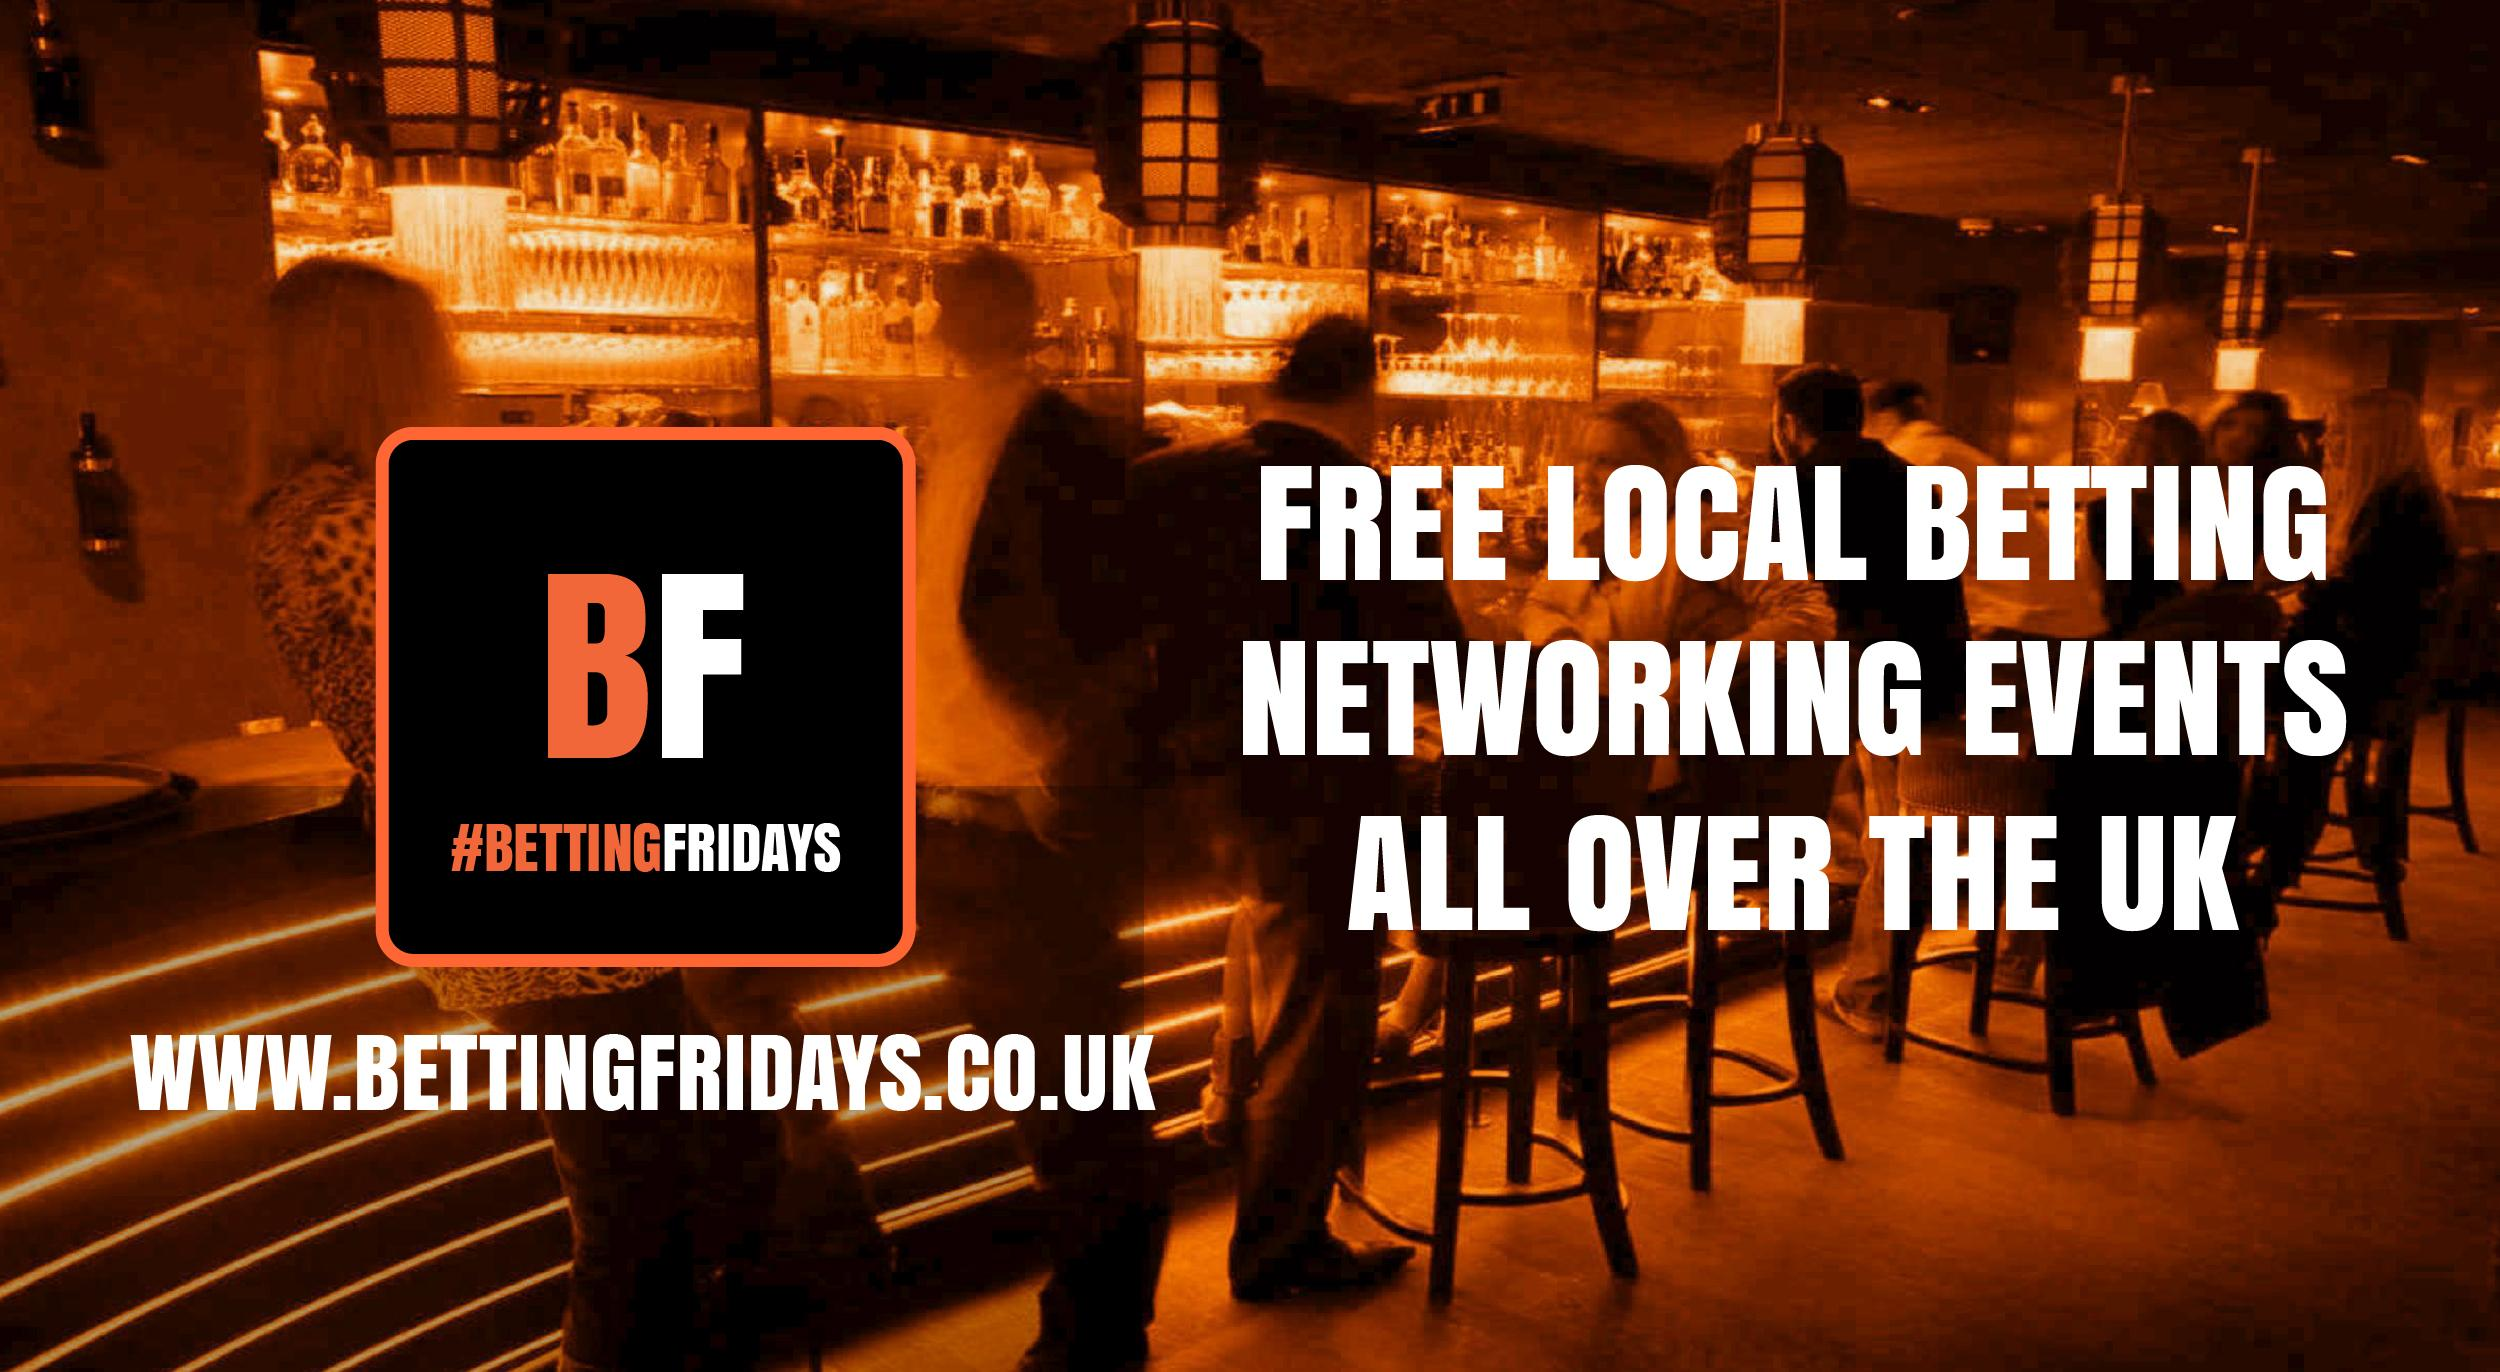 Betting Fridays! Free betting networking event in York